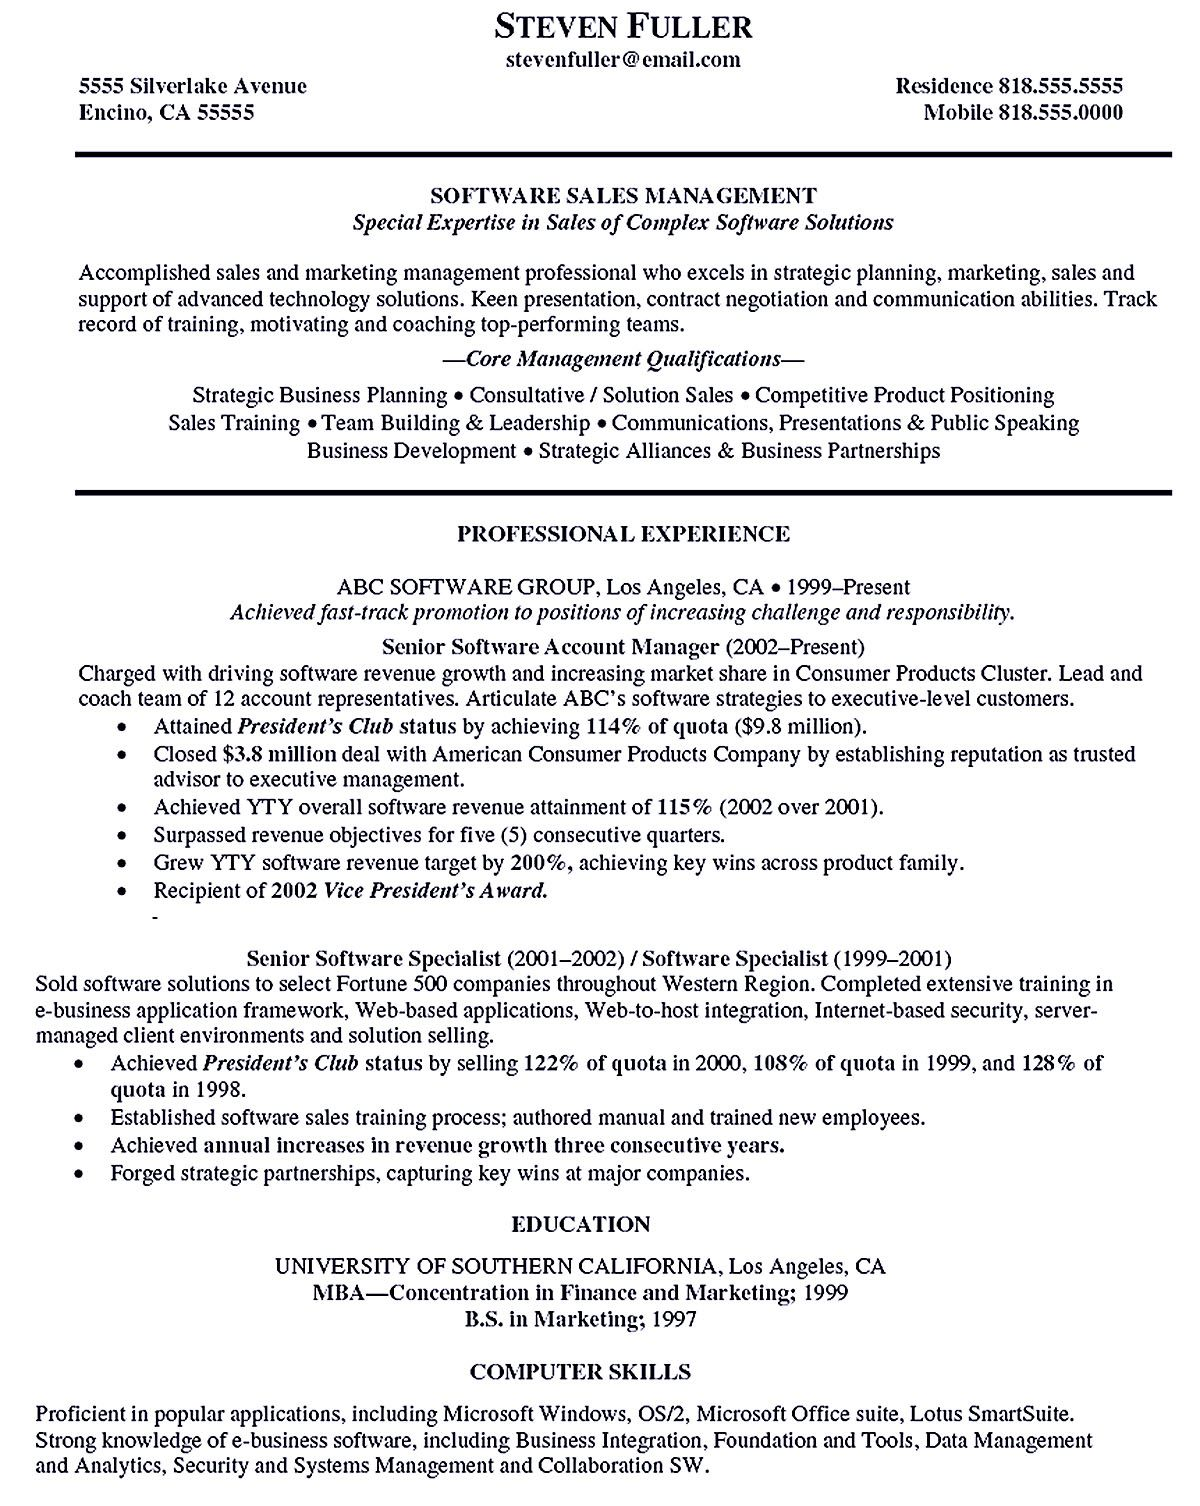 Account Manager Resume Shows Your Professionalism In The Same Field The Resume Has Your Professional Manager Resume Cover Letter For Resume Job Resume Samples